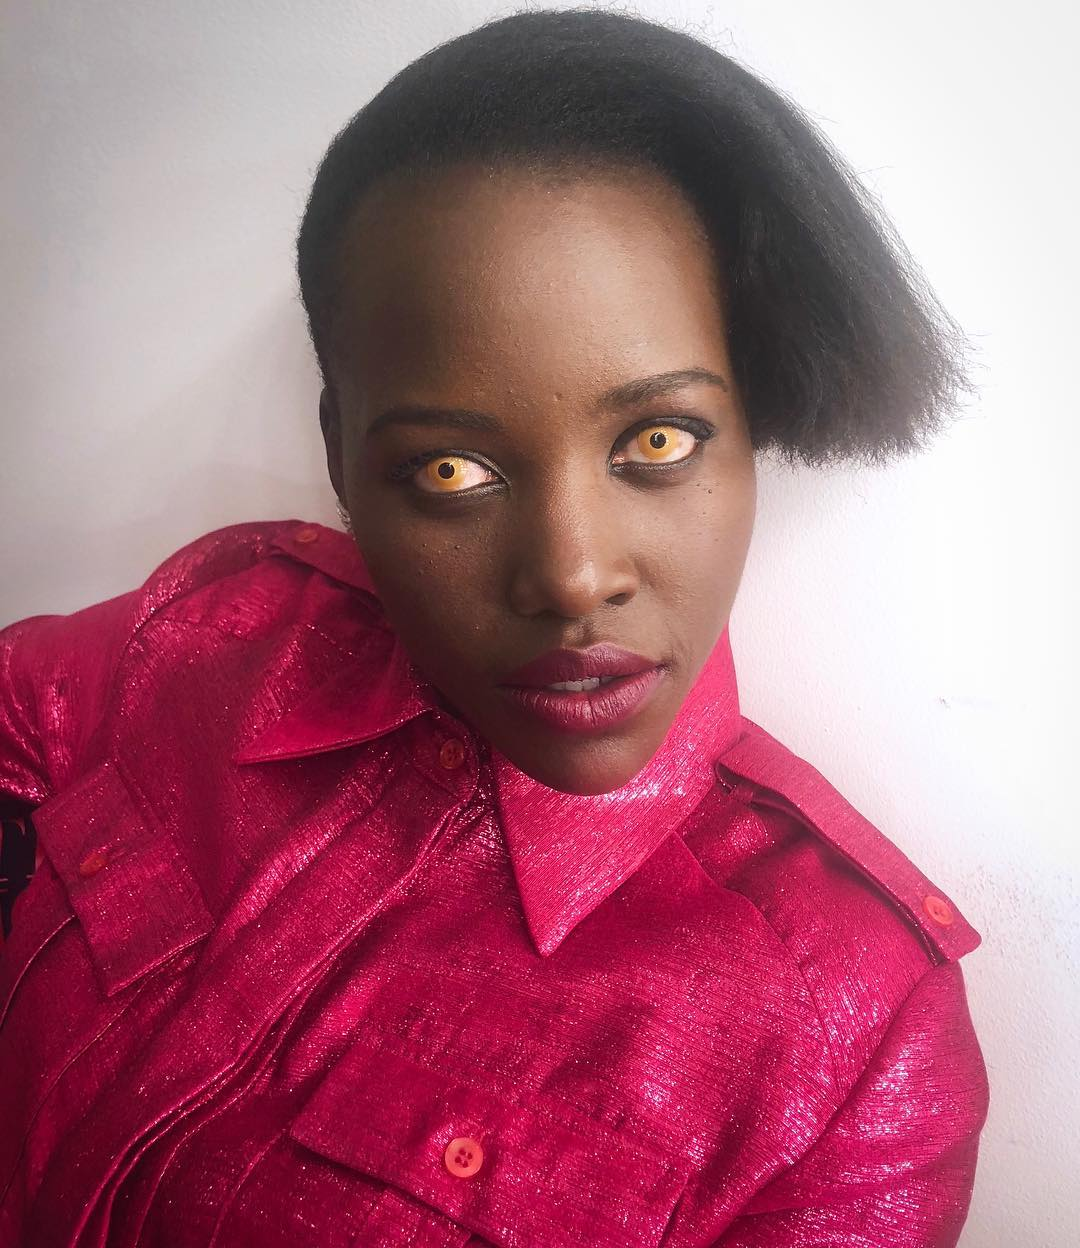 lupit - 'It wasn't my intention' Lupita apologizes to disability groups